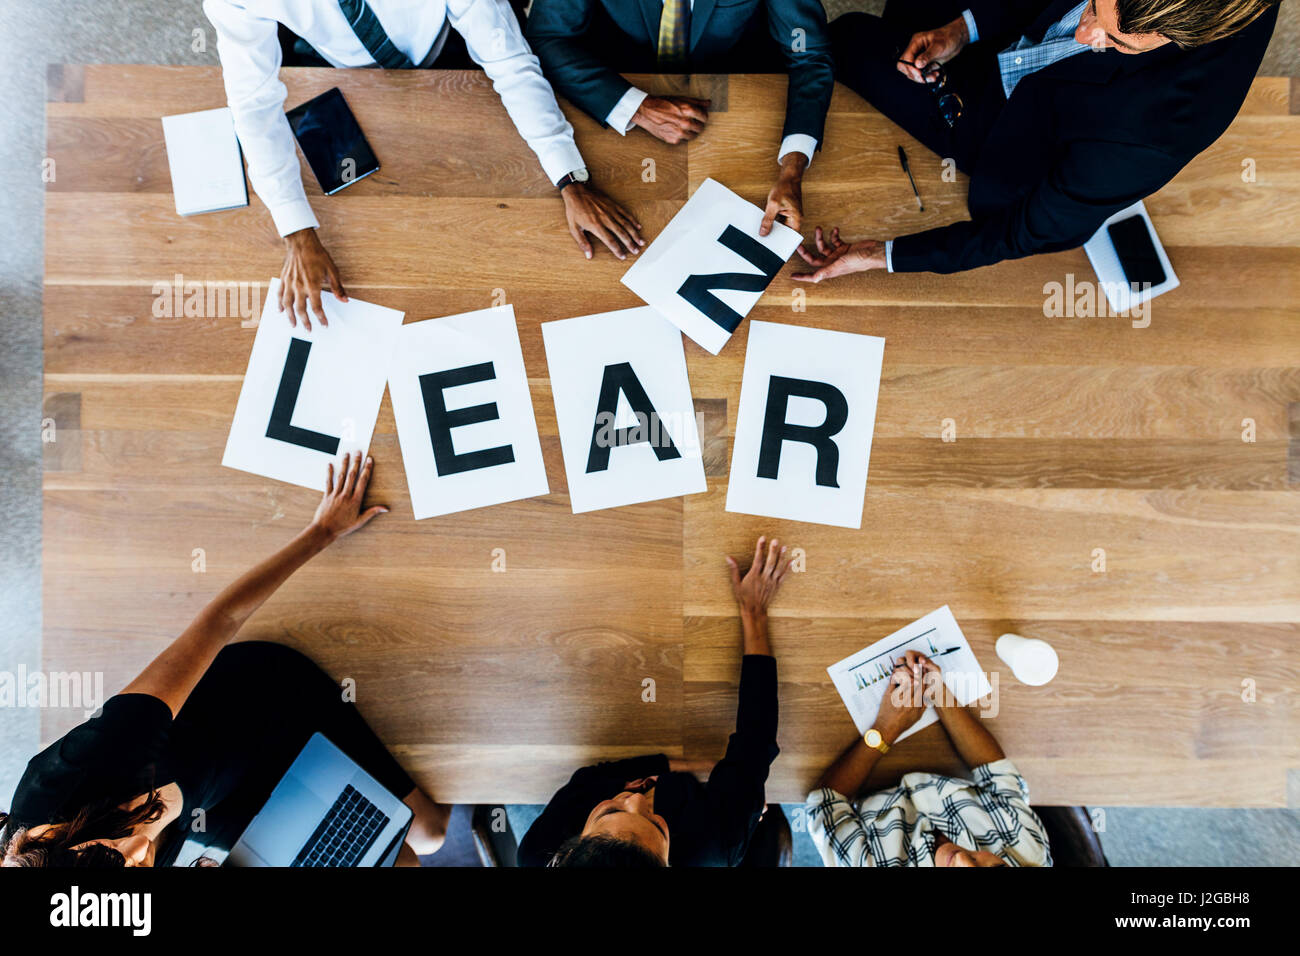 Group of people placing signs with alphabets forming the word learn on table. Business people discussing over learning - Stock Image